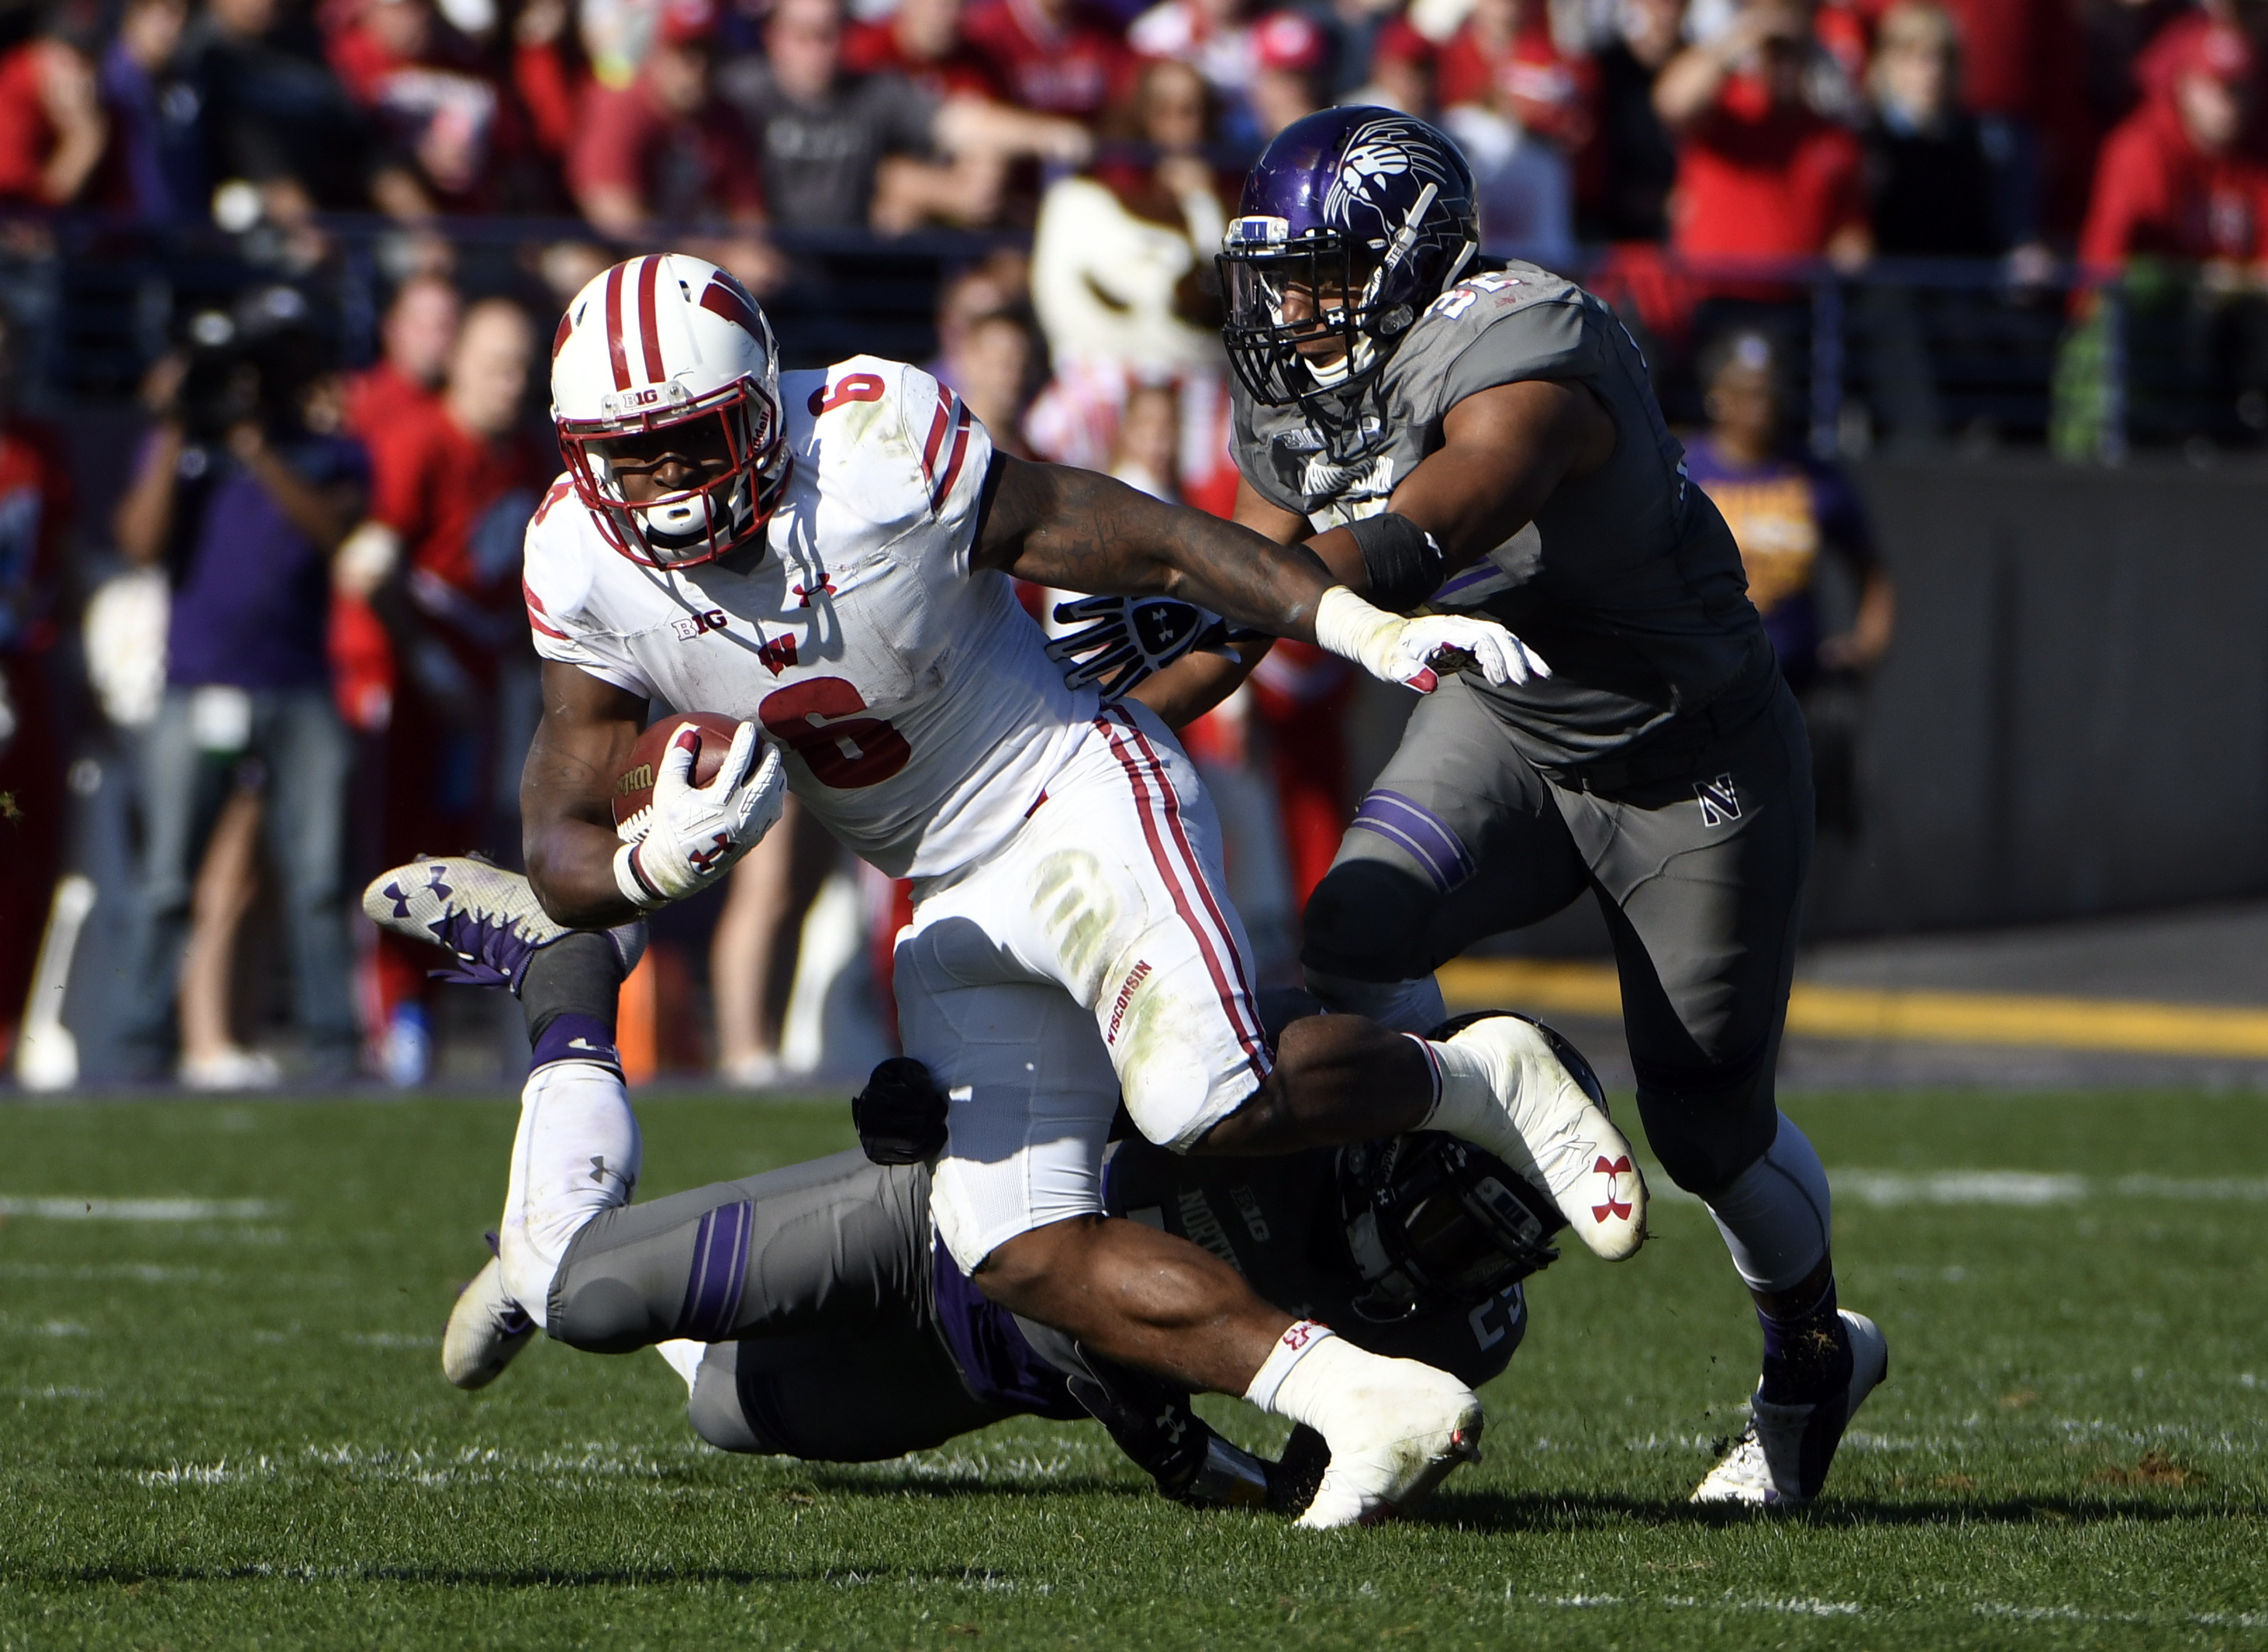 Wisconsin running back Corey Clement (6) runs against Northwestern during the second half of an NCAA college football game in Evanston, Ill., Saturday, Nov. 5, 2016. Wisconsin won 21-7. (AP Photo/David Banks)